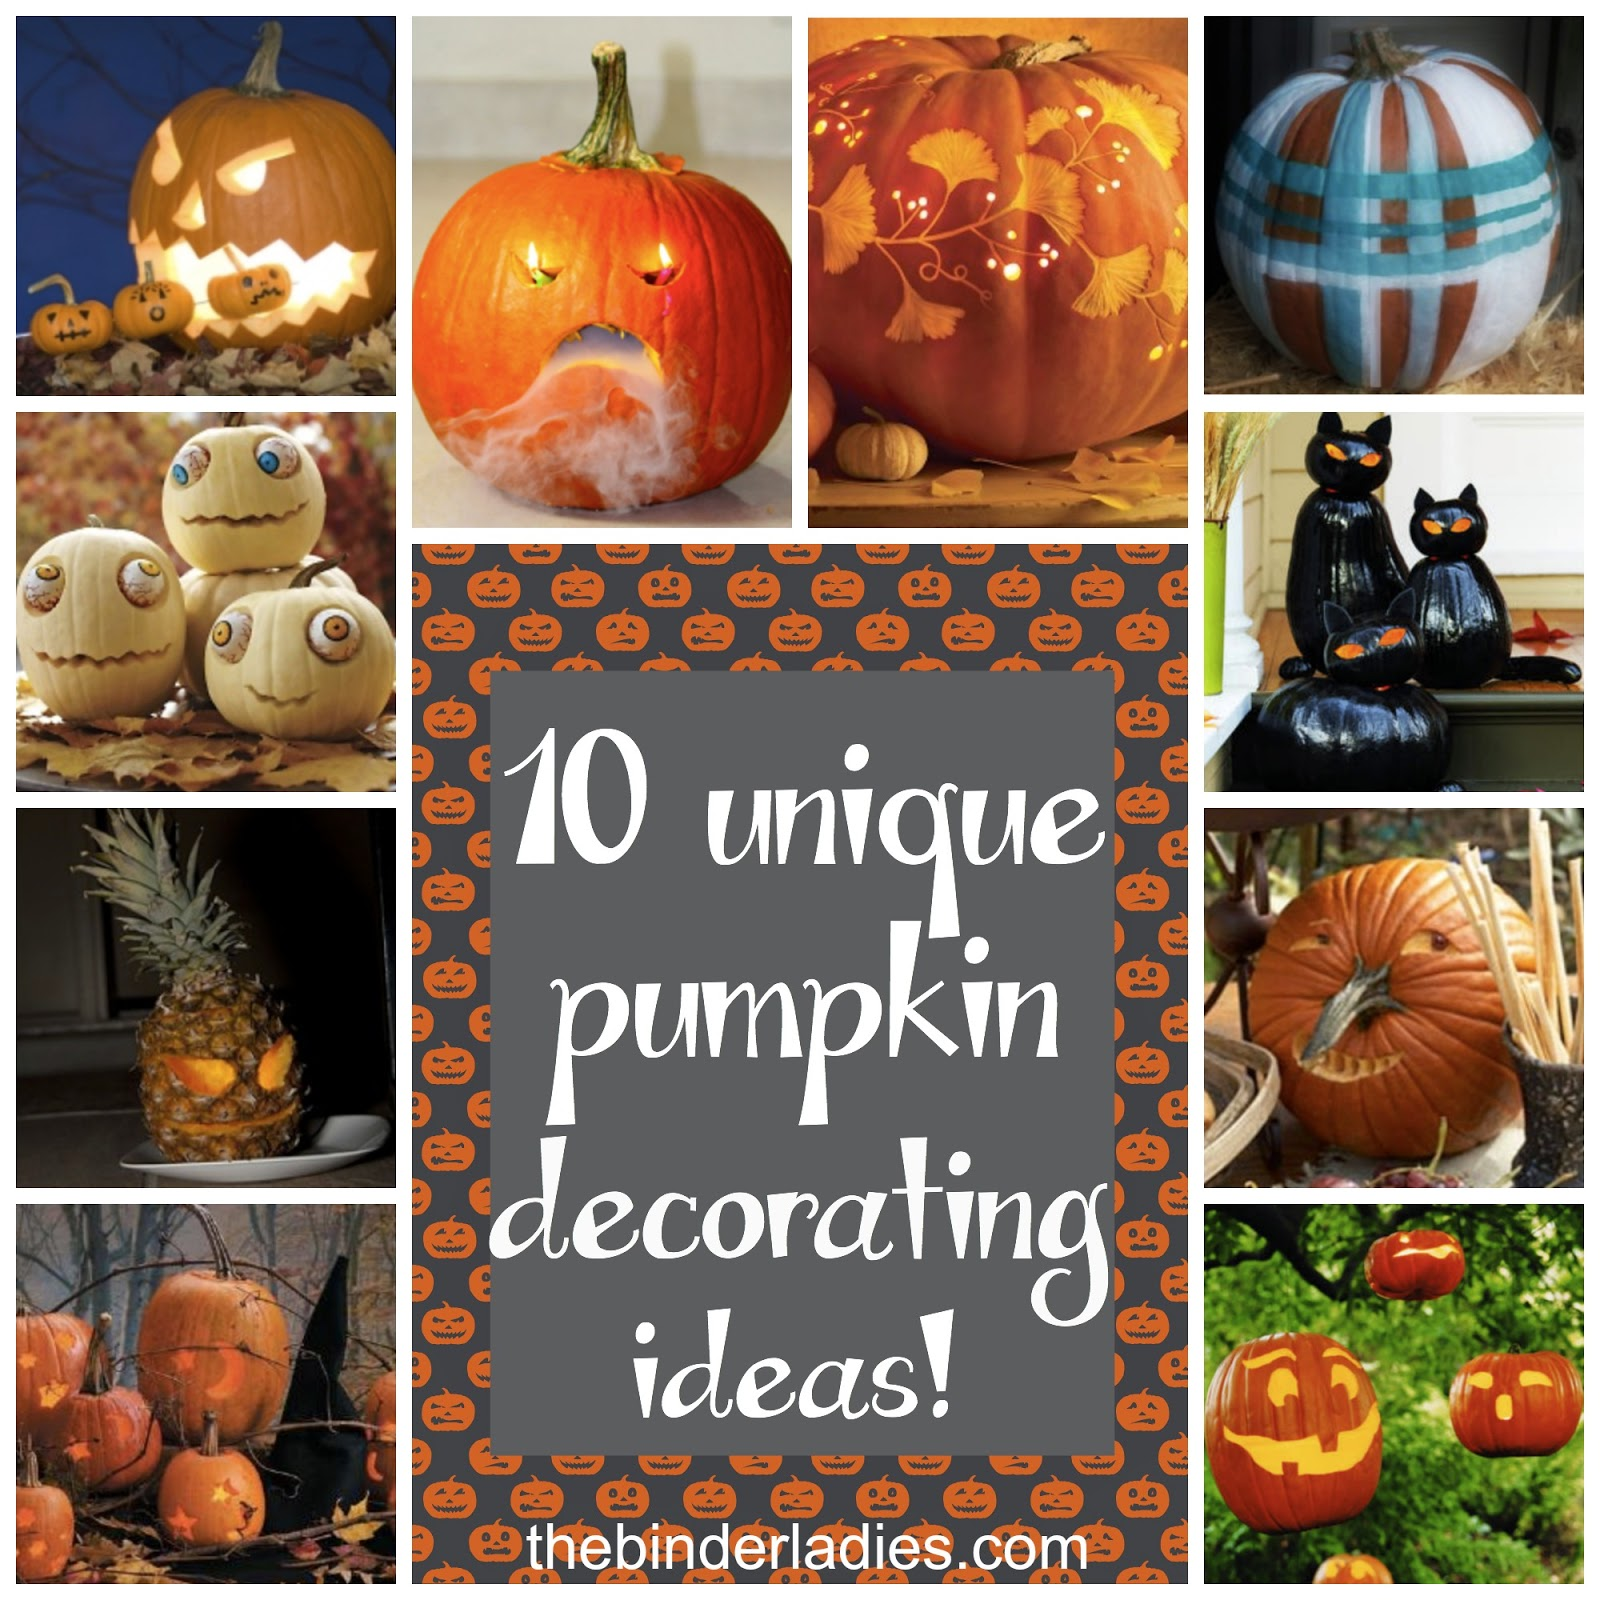 http://www.thebinderladies.com/2014/10/halloween-10-unique-pumpkin-decorating.html